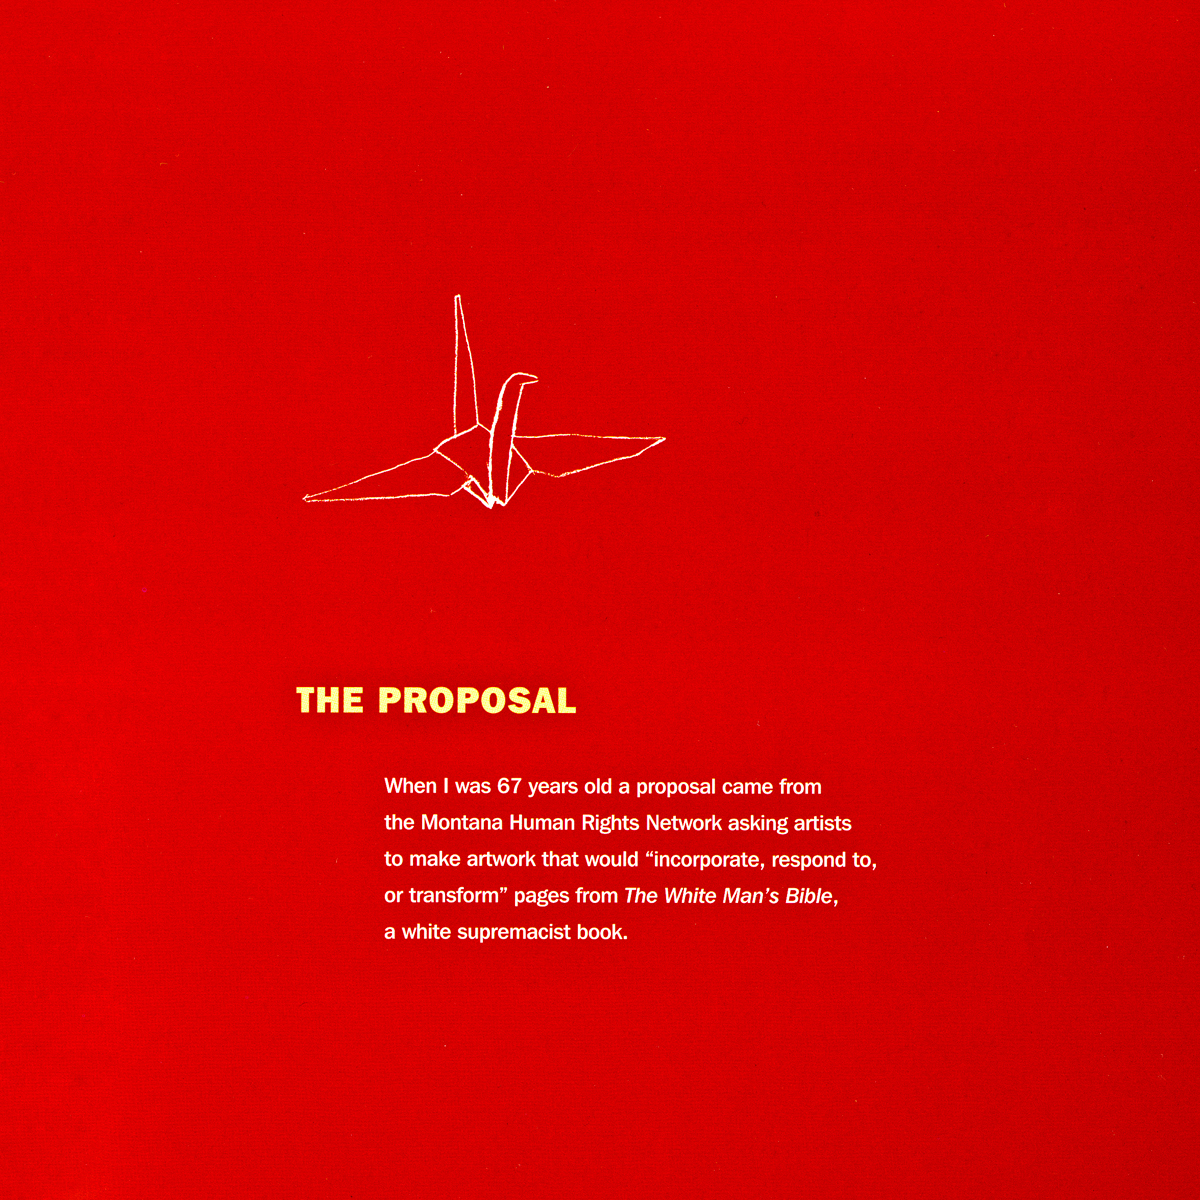 Transforming Hate by Clarissa Sligh. Red page: the proposal for the book project.